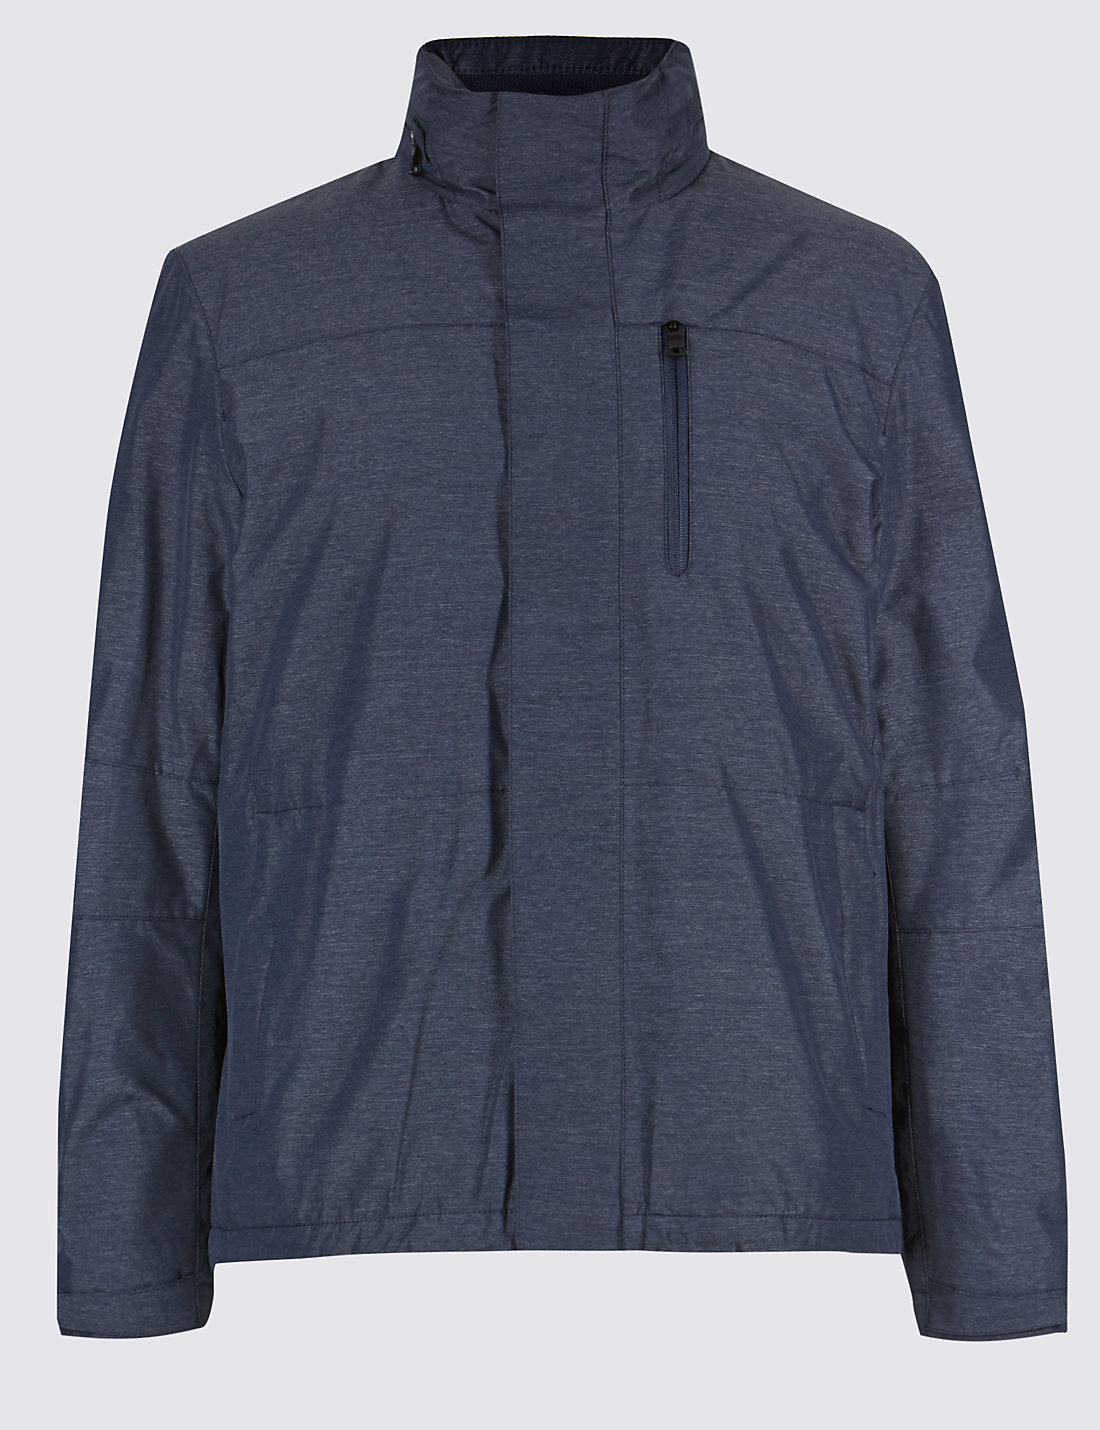 Fleece Lined Jacket with Stormwear™ | M&S